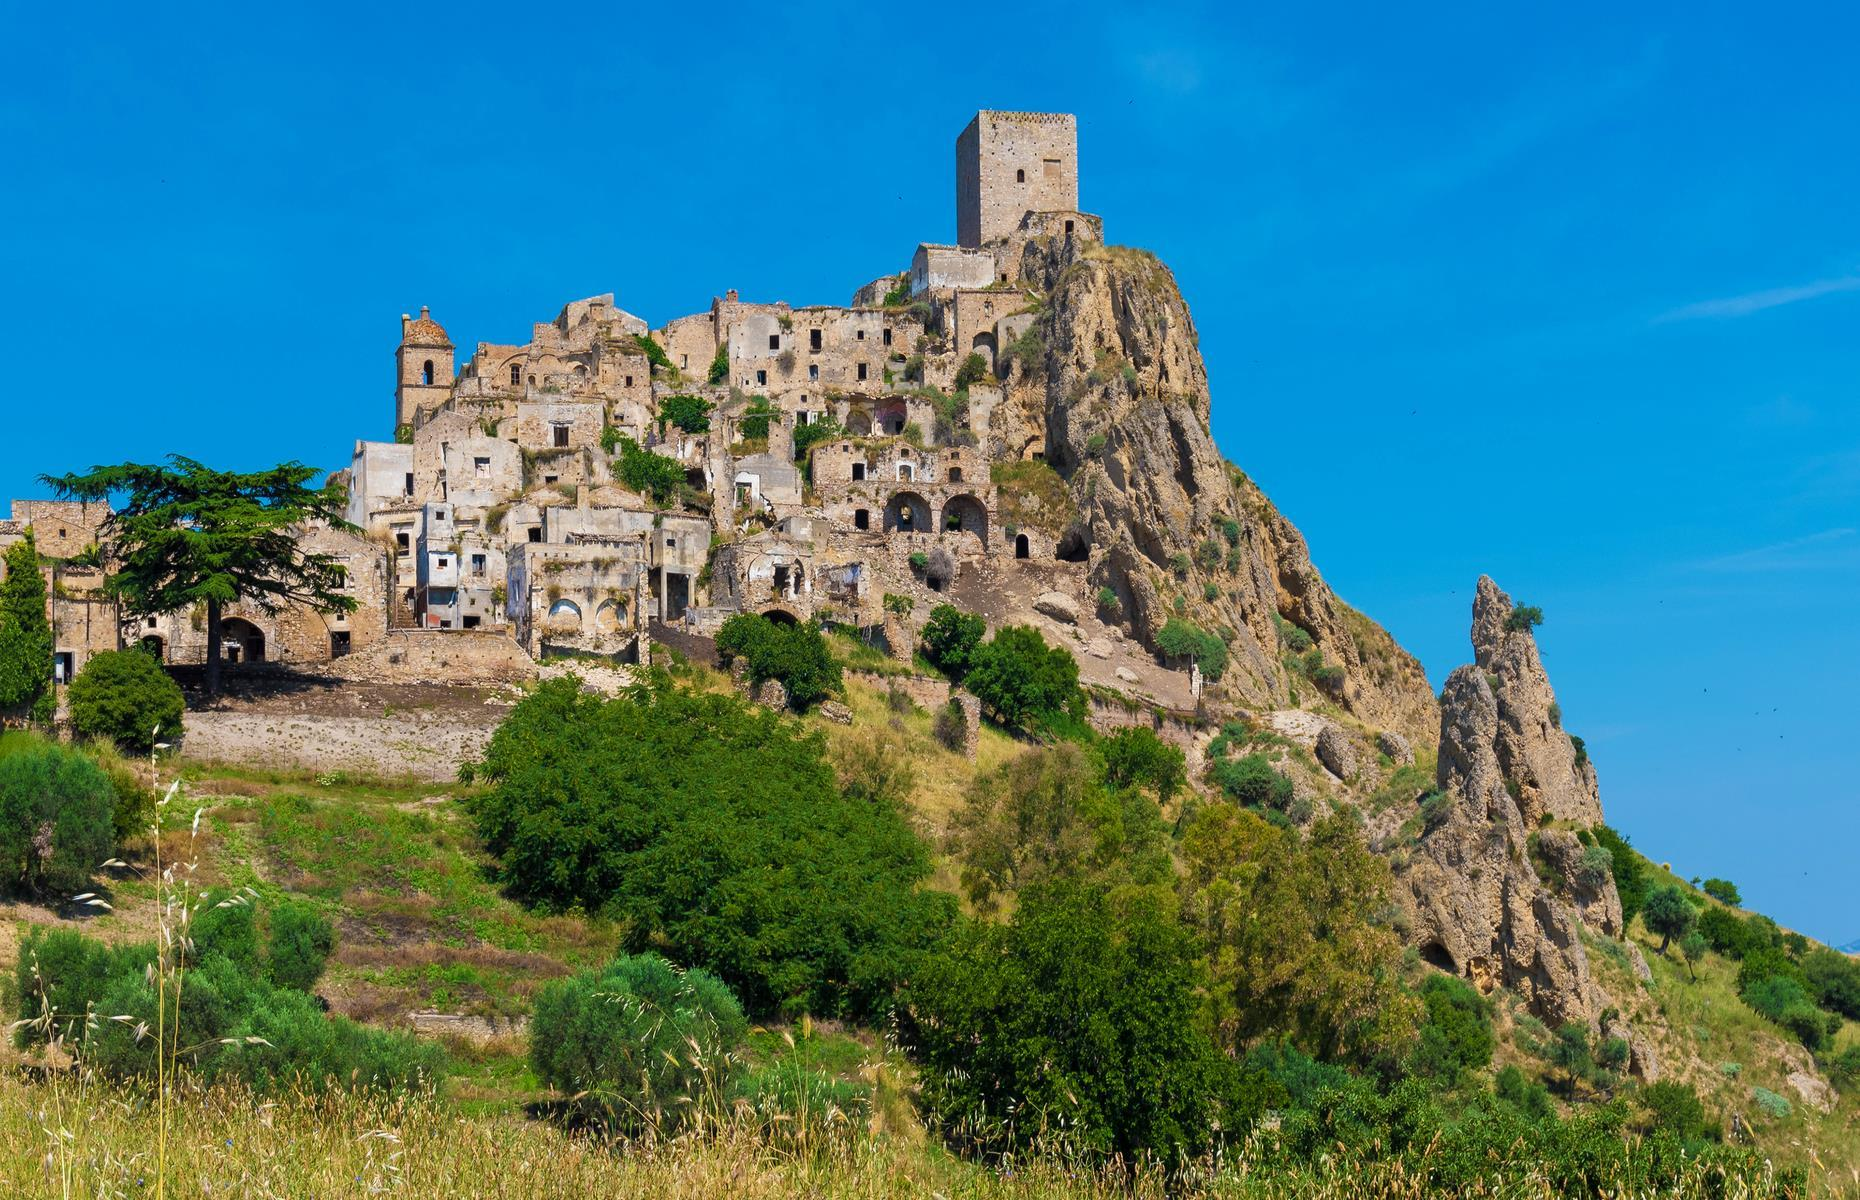 Slide 34 of 41: Cascading over a hilltop in Italy's Matera province, Craco is quite a sight. It seems almost to blend with its surroundings, its windowless buildings the same color as its craggy perch. But though it looks at one with the wilderness now, Mother Nature hasn't been kind to Craco over the centuries. See more perilous places around the world here.